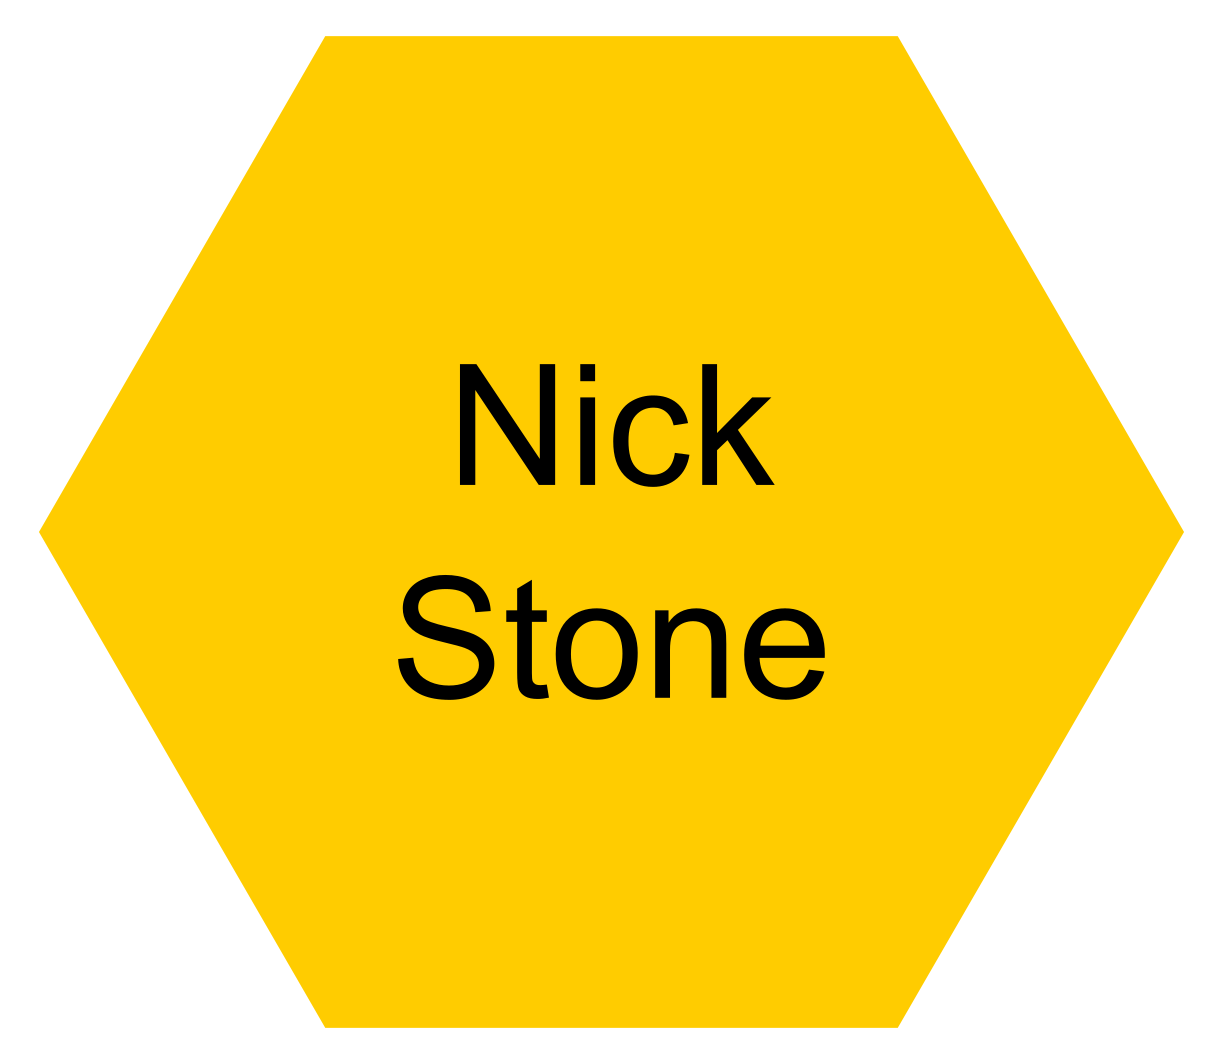 Prof. Nick Stone (University of Exeter: Raman Nanotheranostics Programme Director) - Click this icon to reveal their contact details.